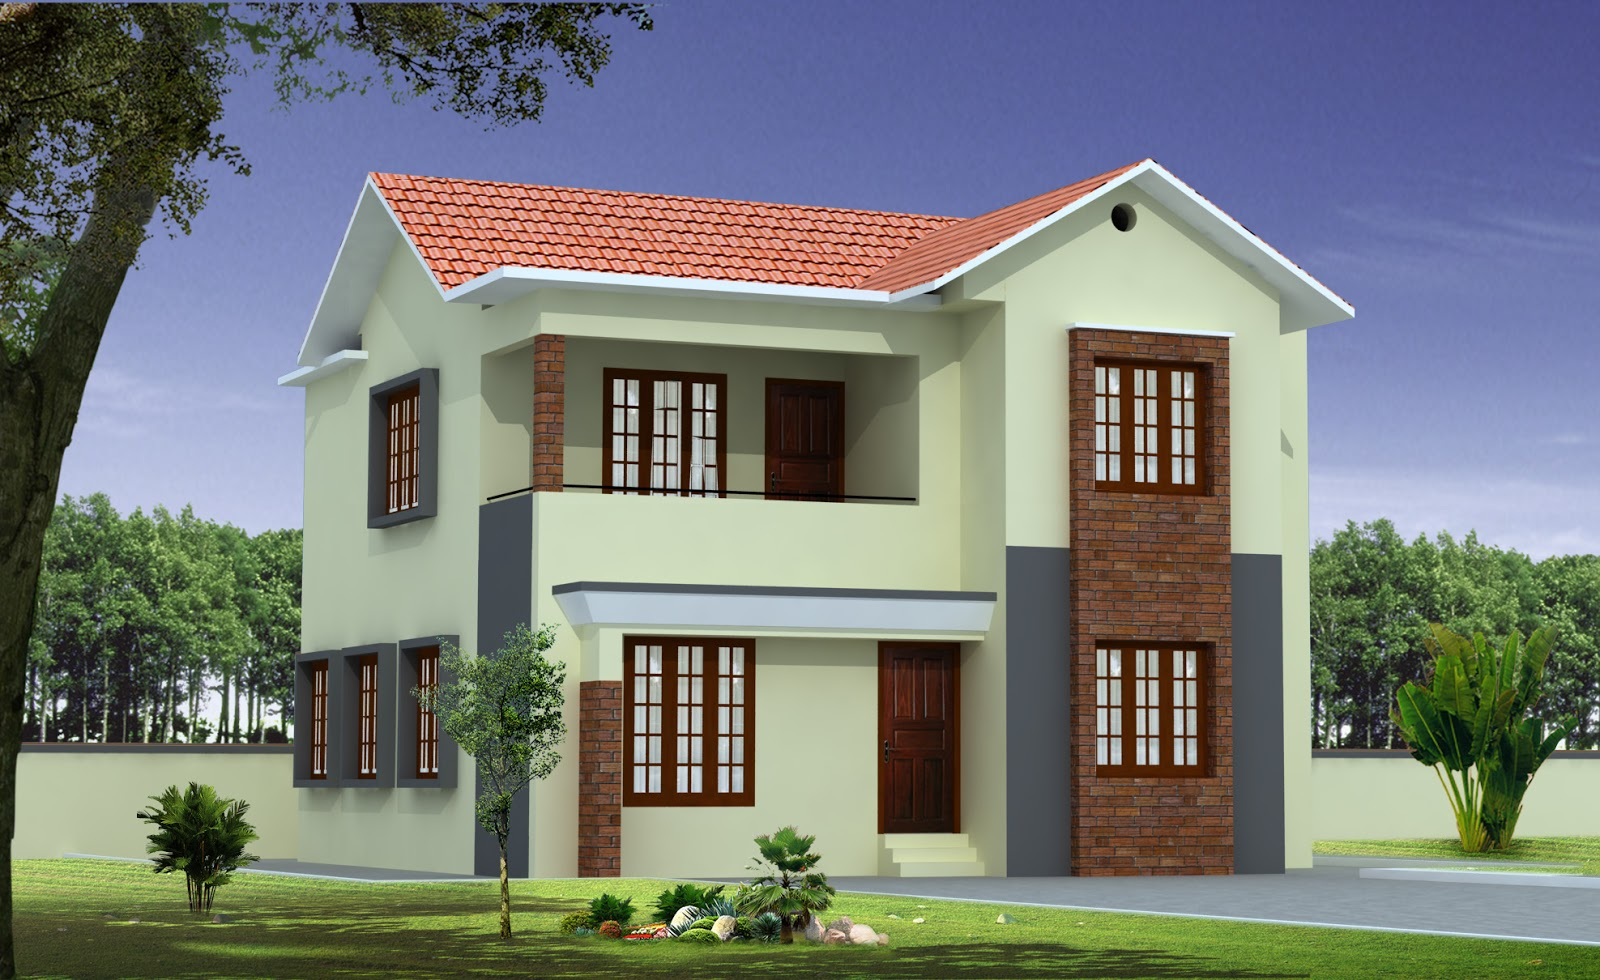 Build a building latest home designs - Design of home ...